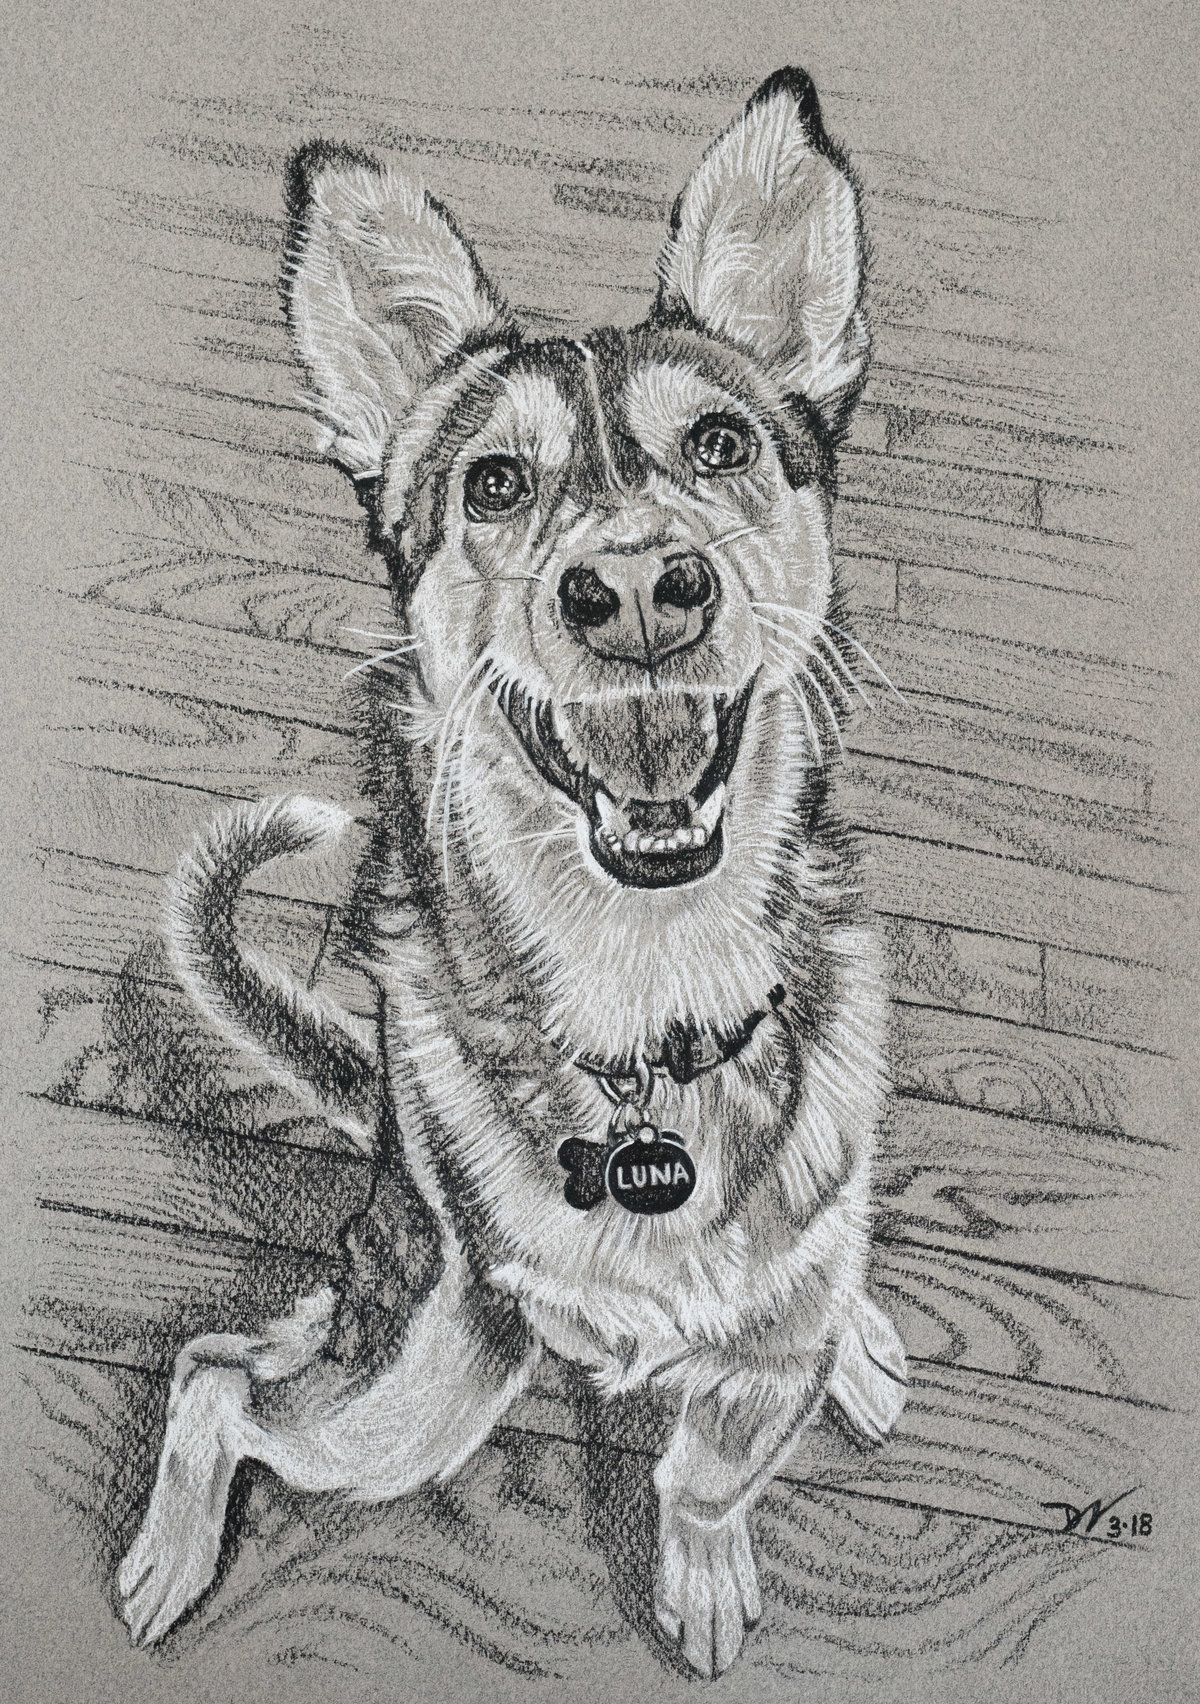 2018-03 Luna Pup - 9X13 - charcoal on paper - SA